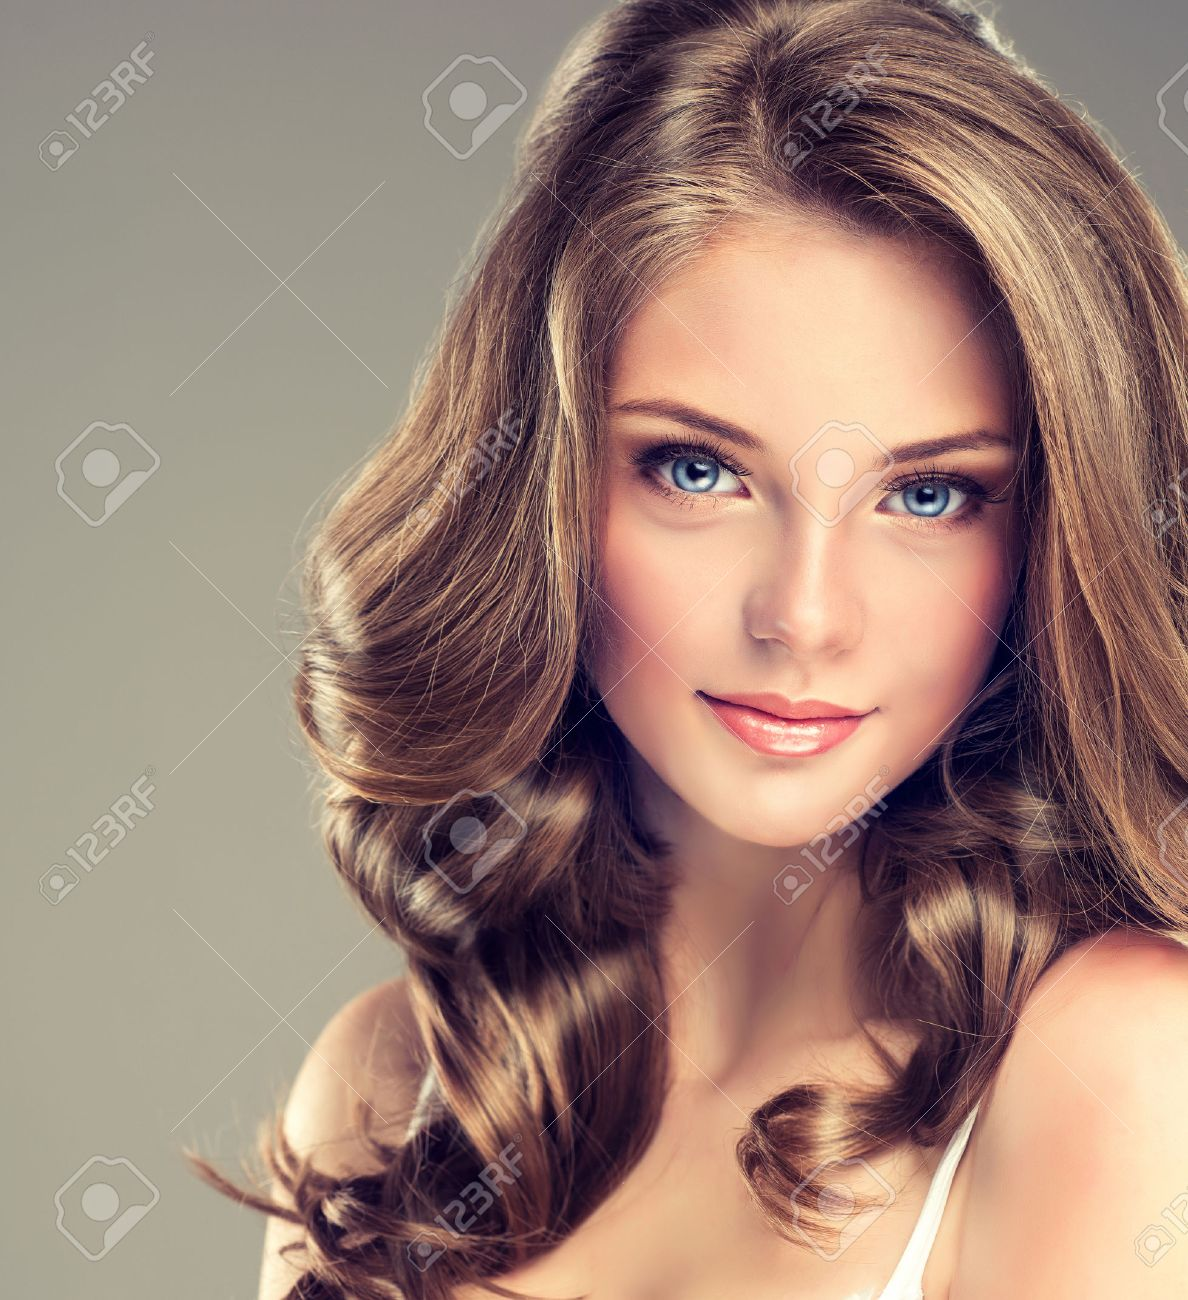 Awesome Smiling Beautiful Girl Brown Hair With An Elegant Hairstyle Short Hairstyles For Black Women Fulllsitofus